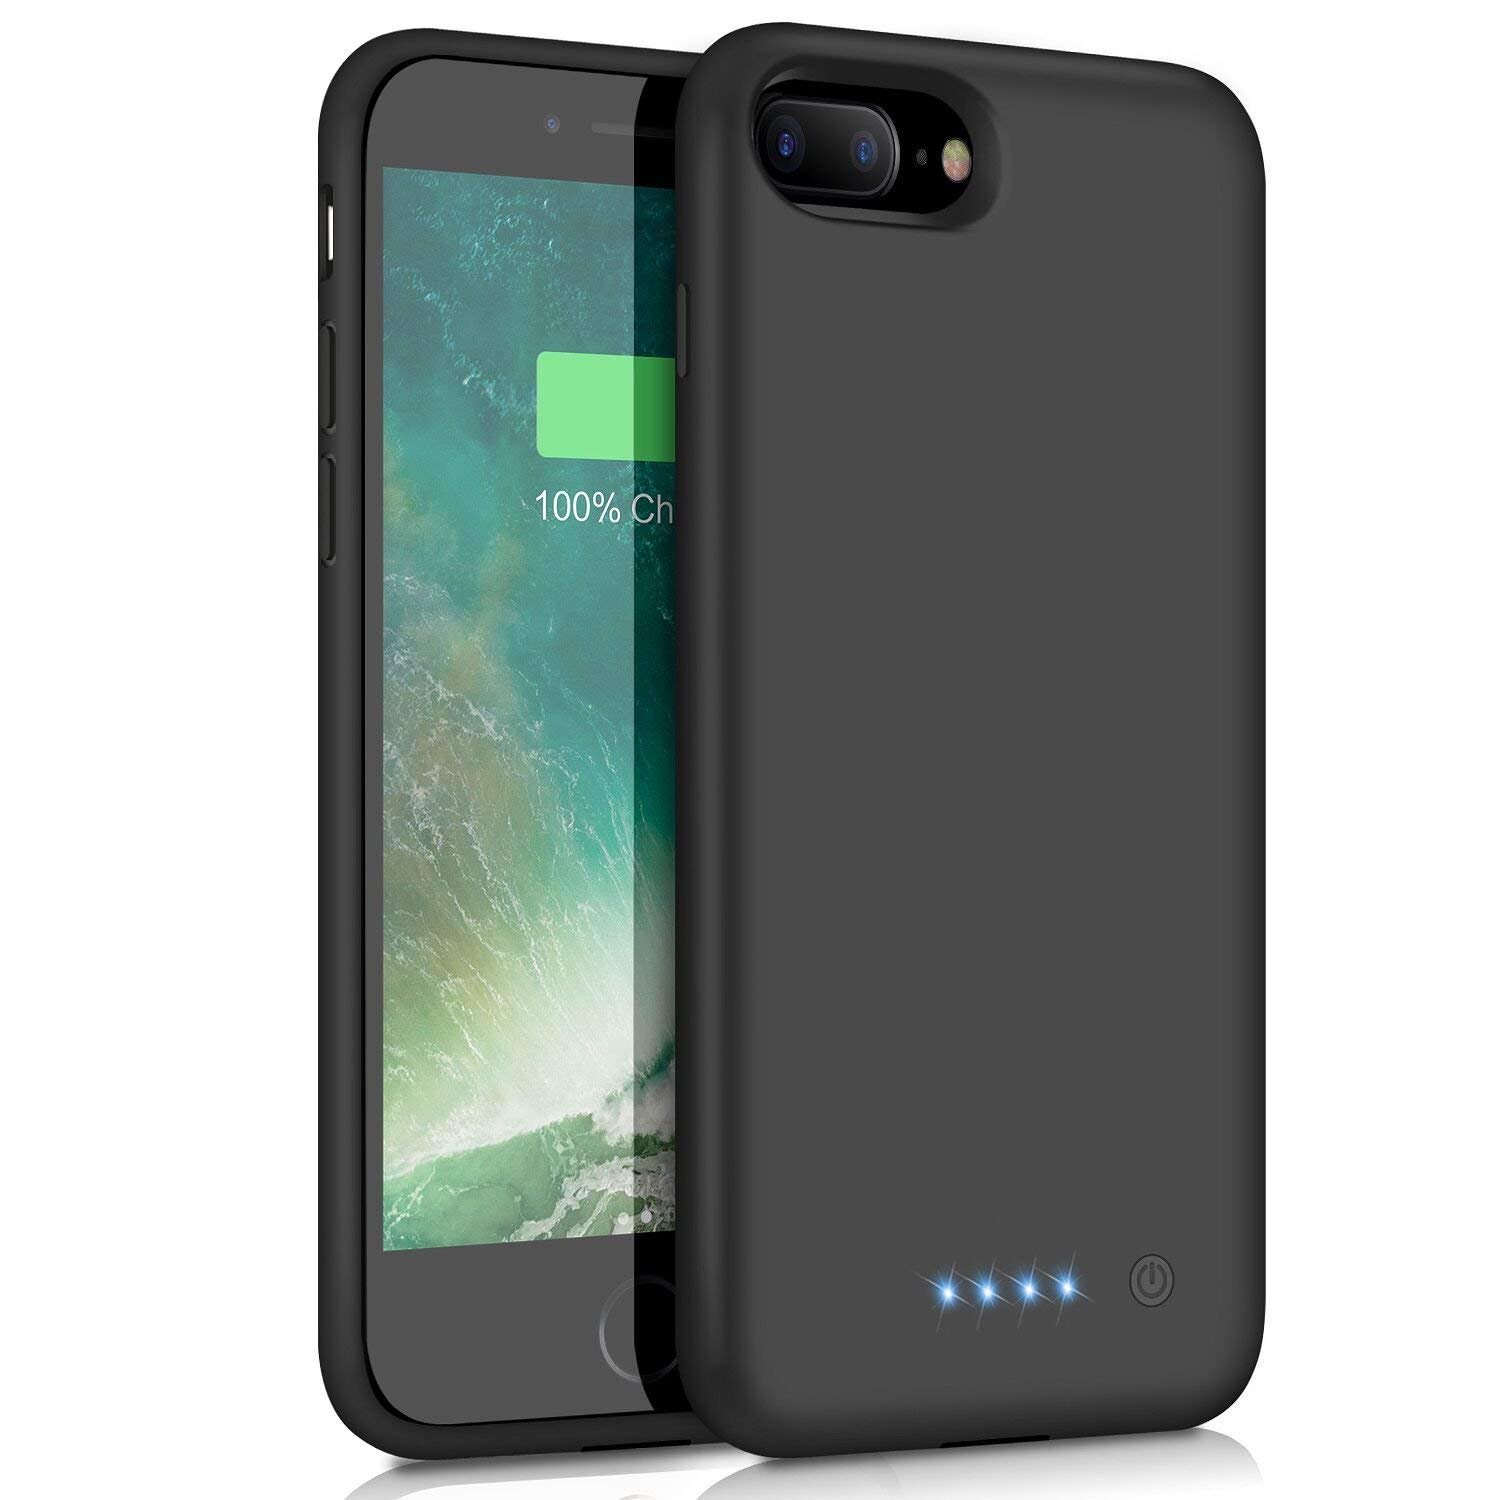 Battery Case for iPhone 6 Plus / 7 Plus / 8 Plus, 8500mAh Portable Battery Pack Rechargeable Protective Smart Battery Case for iPhone 6 Plus / 7 Plus / 8 Plus External 5.5 inch Charging Case - Black by VOOE